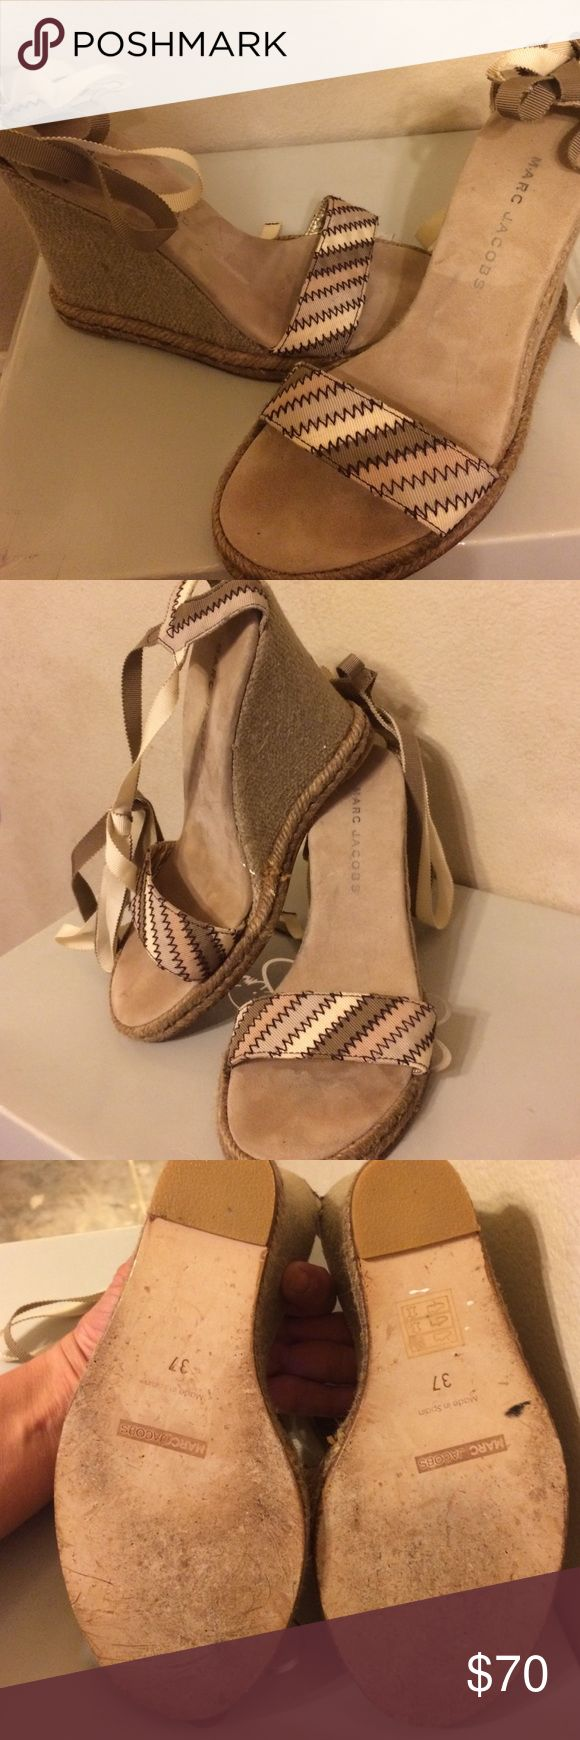 Marc Jacob wedge sandal org$300 Linen khaki and olive colored wedged heels sandal espadrille by Marc Jacobs cream and I'll live riven back by the heel wraps around the ankle and brings to a Thai stripes in plum olive khaki and cream heel covered in a burlap type material comfy gently worn 2x and cared for. Make OFFER PLEASE TAKING OFFERs WILL TRADE FOR MISS ME JEANS  27,28 W OR UGG BOOTS sz8 Marc Jacobs Shoes Ankle Boots & Booties